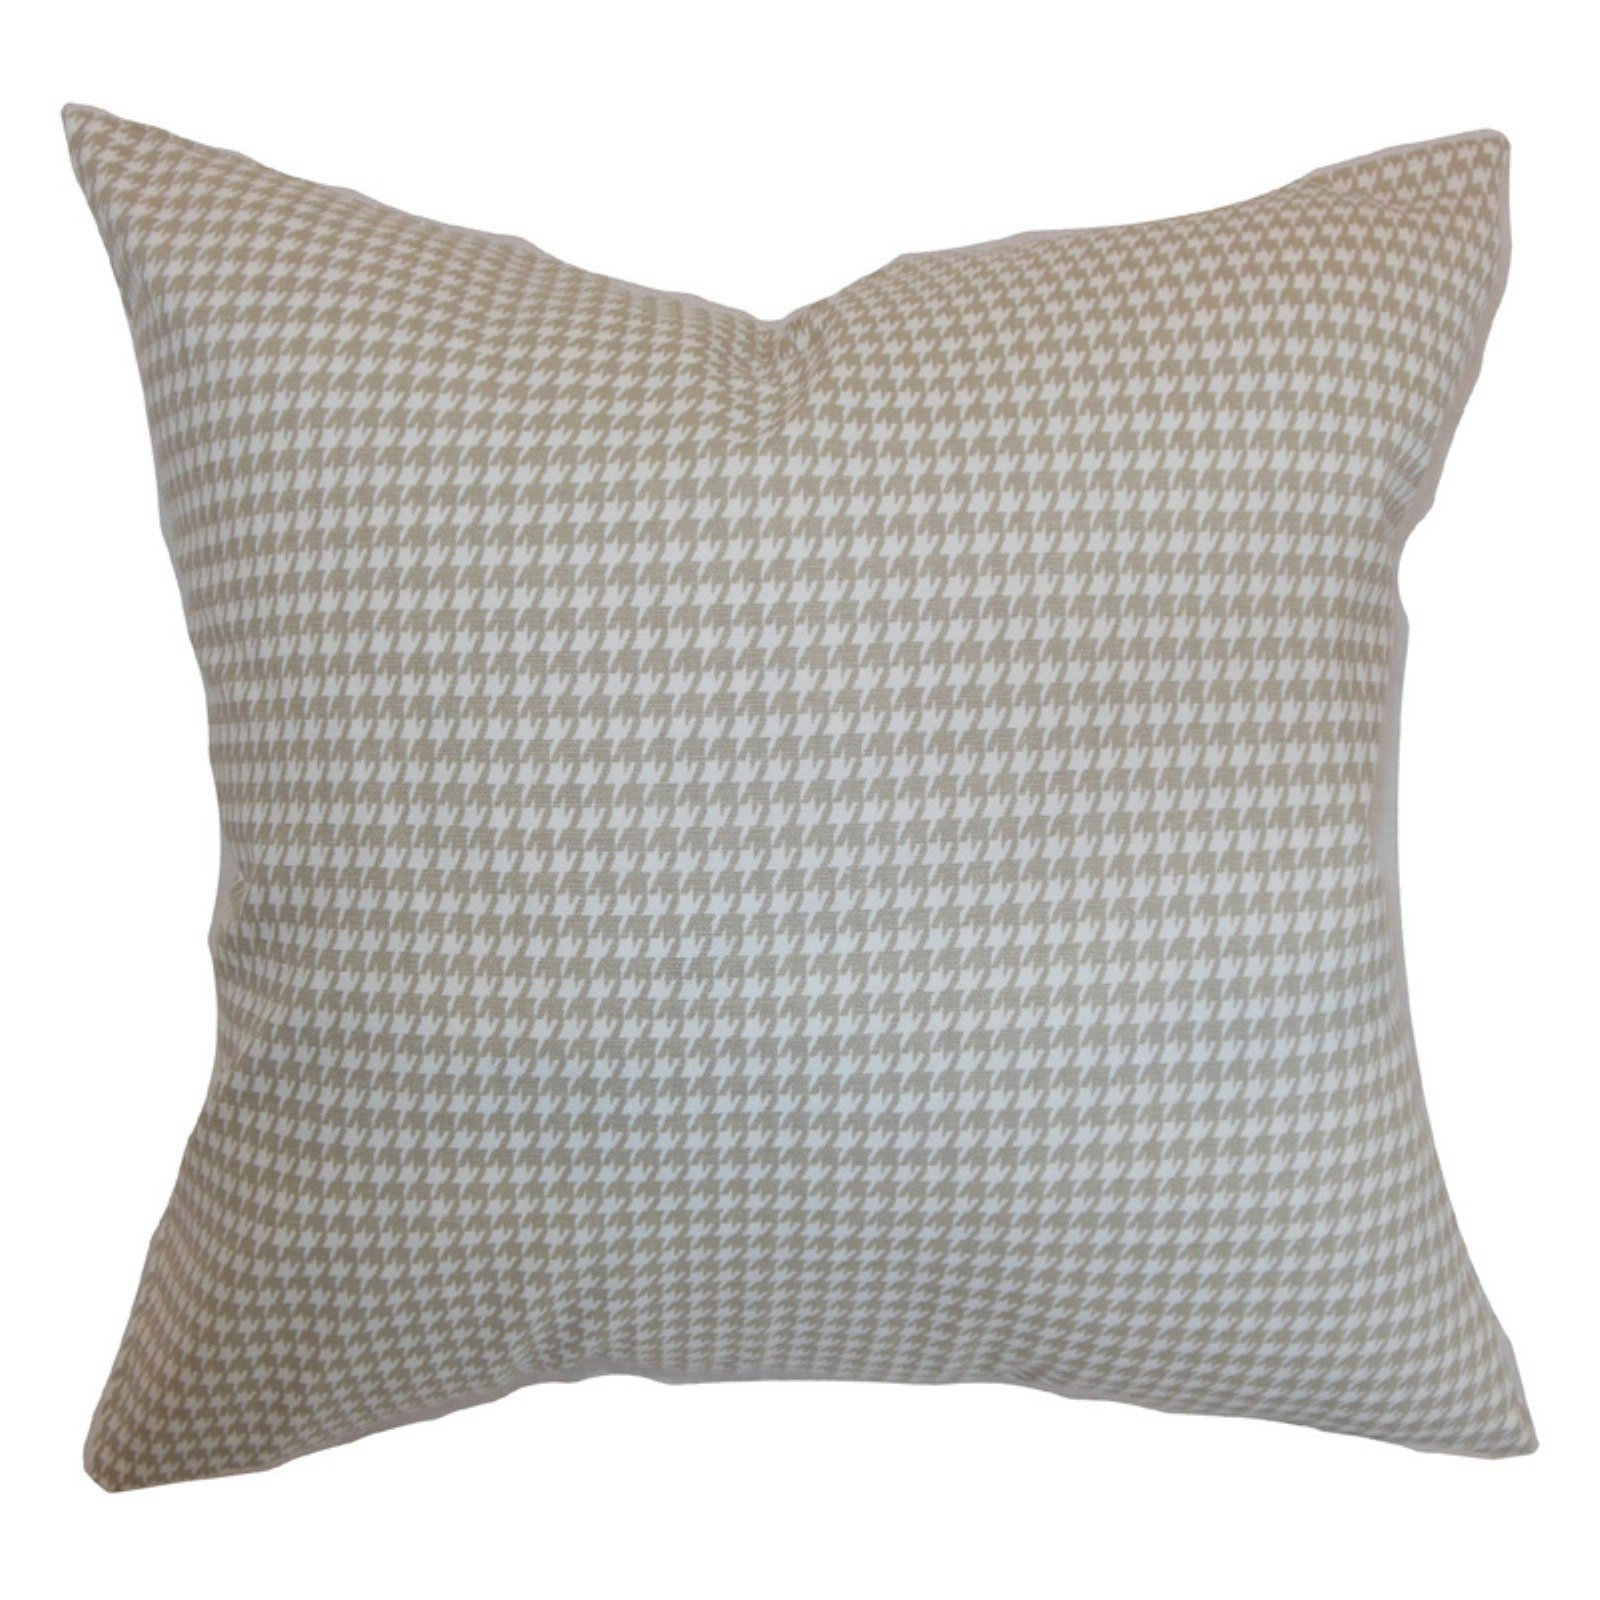 The Pillow Collection Lviv Houndstooth Pillow